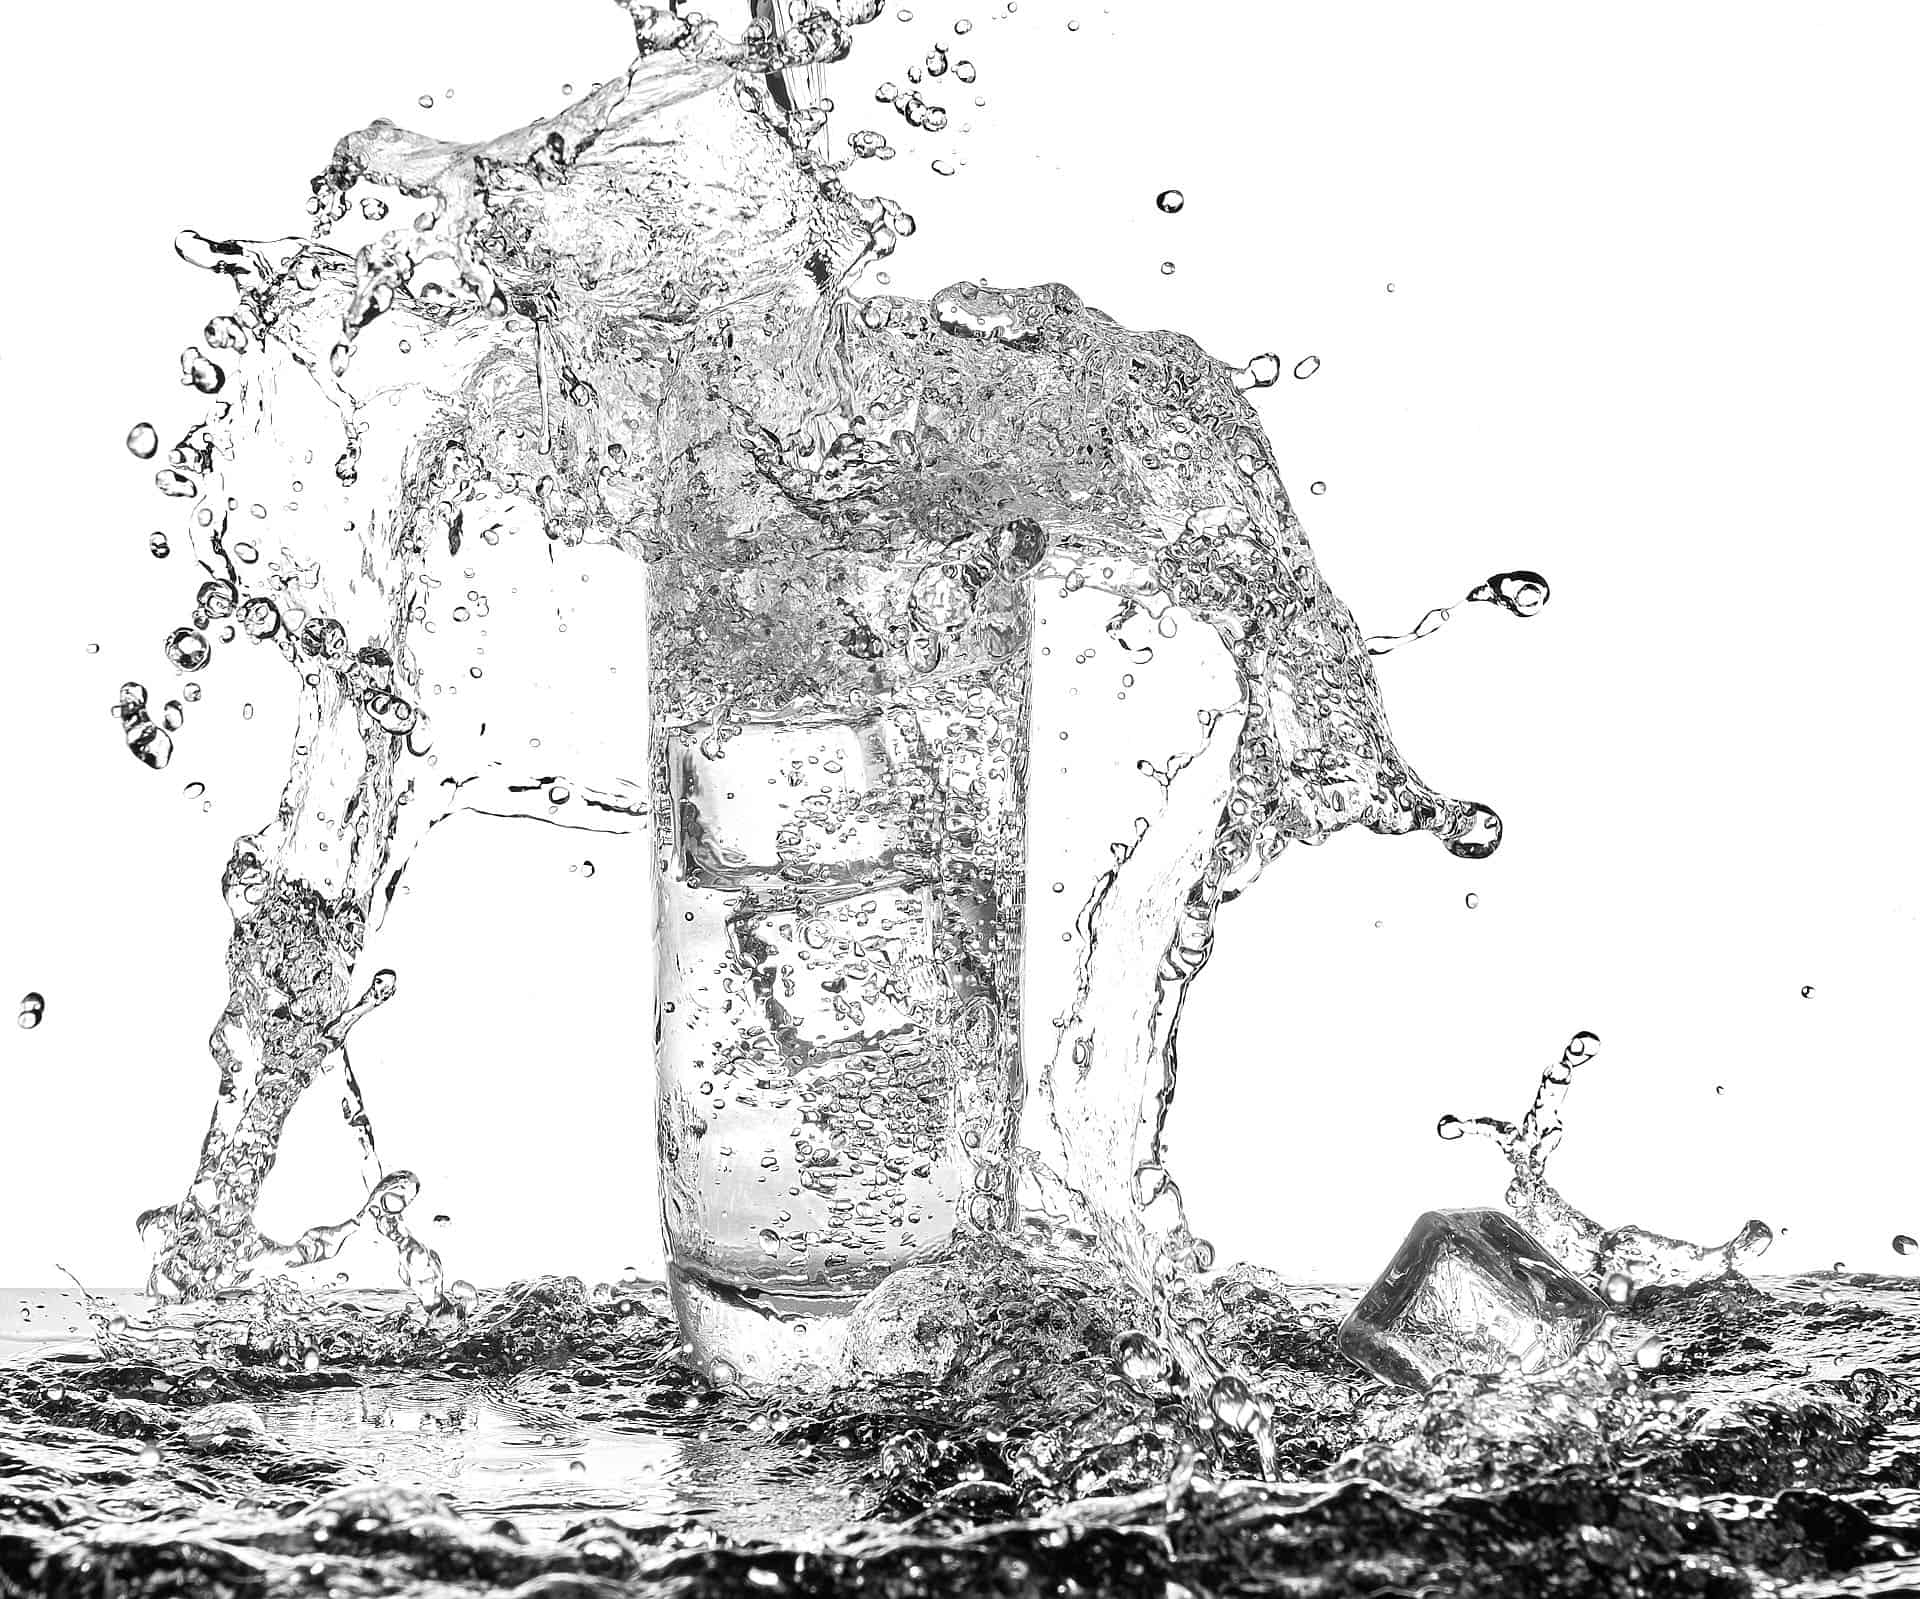 Water splash with droplets